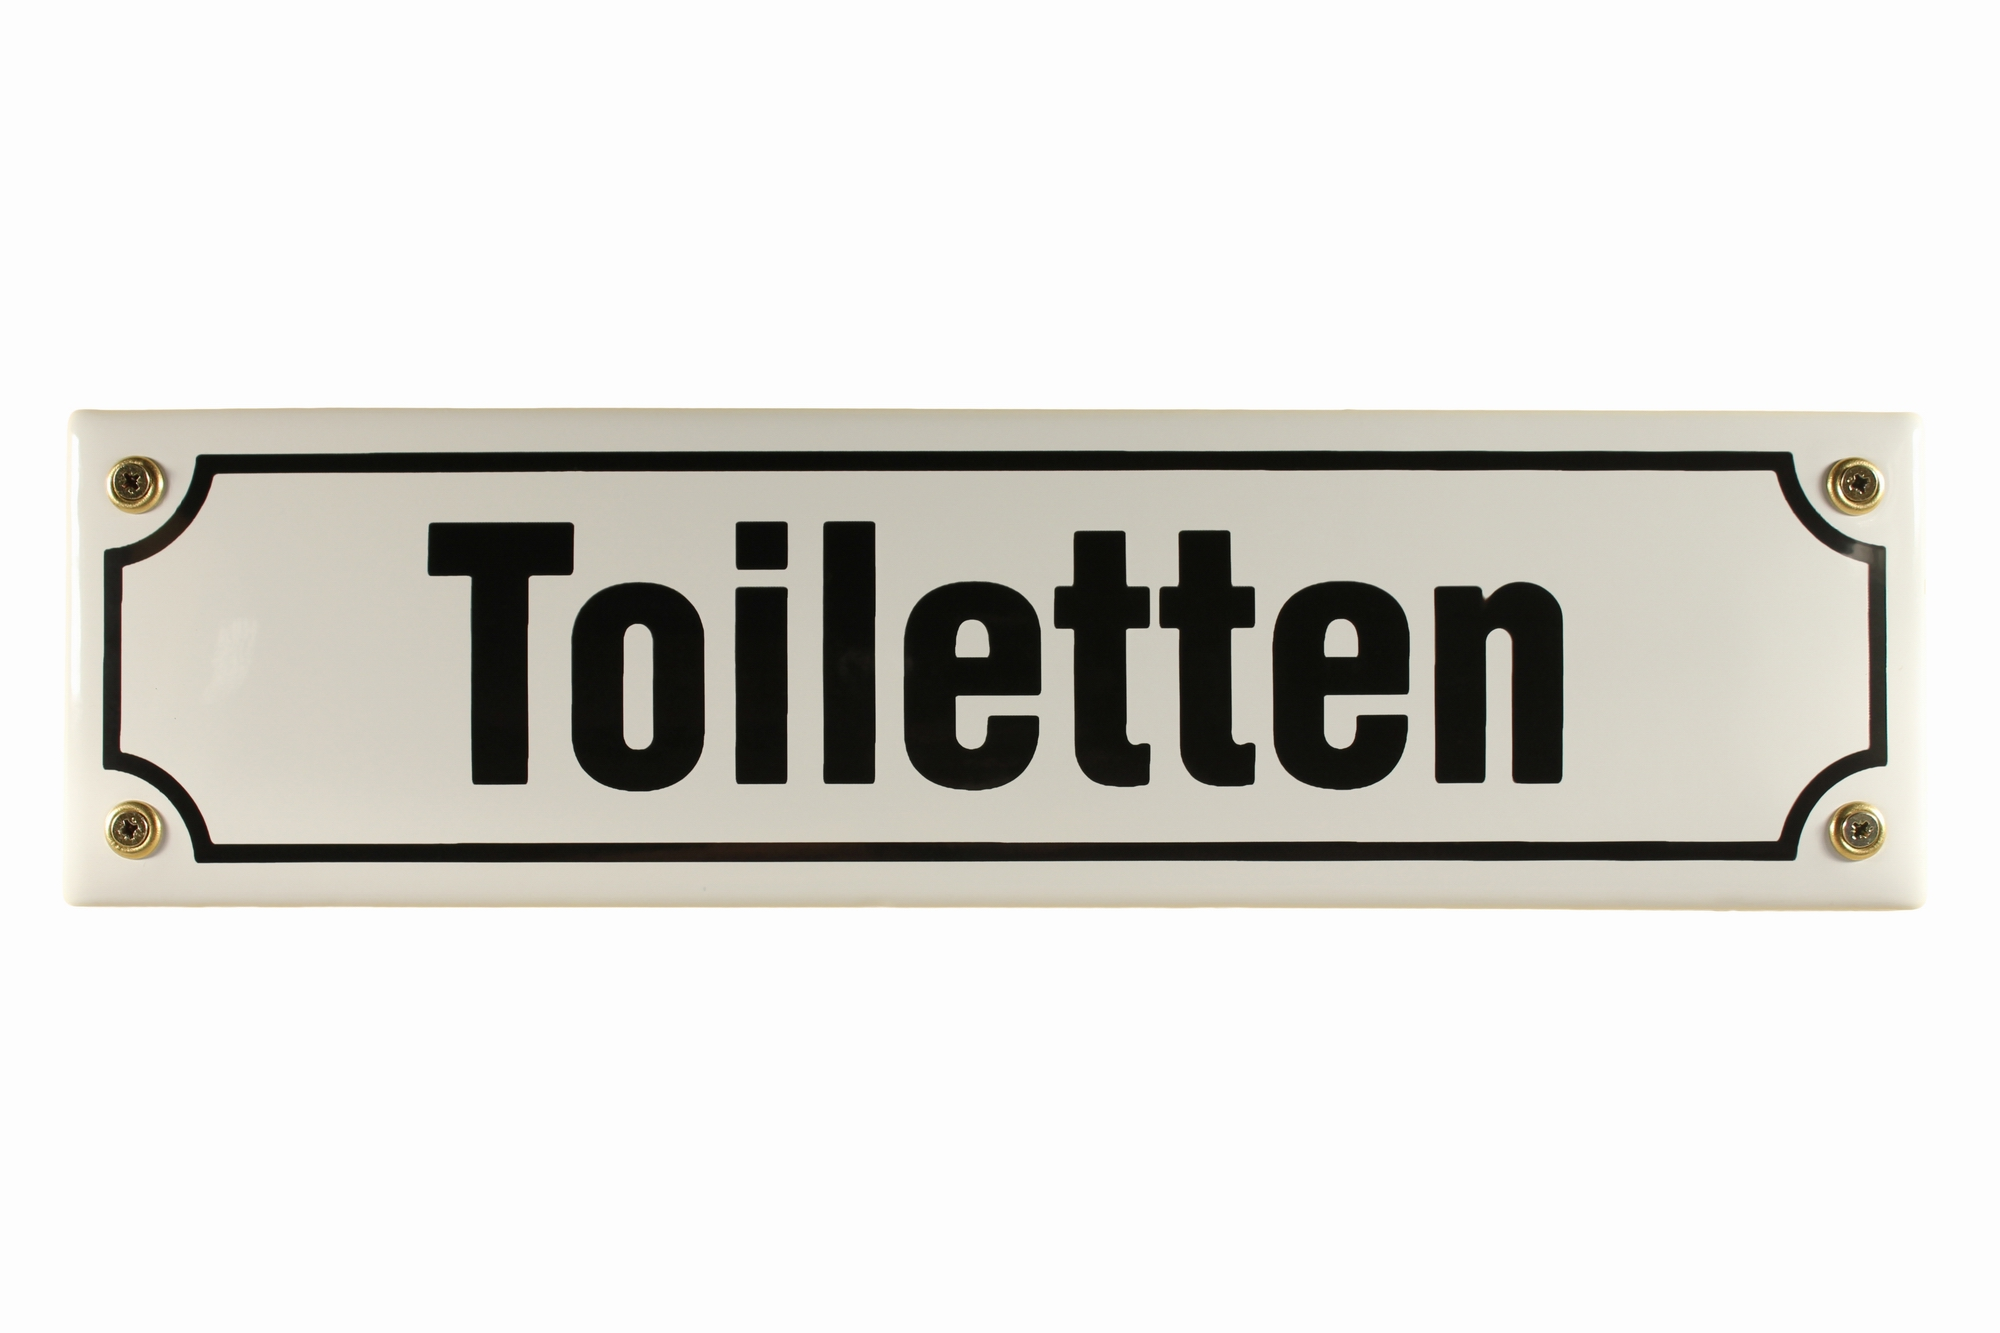 strassenschild toiletten 30x8 cm email t r schild emaille wc t rschild stra enschilder emaille. Black Bedroom Furniture Sets. Home Design Ideas